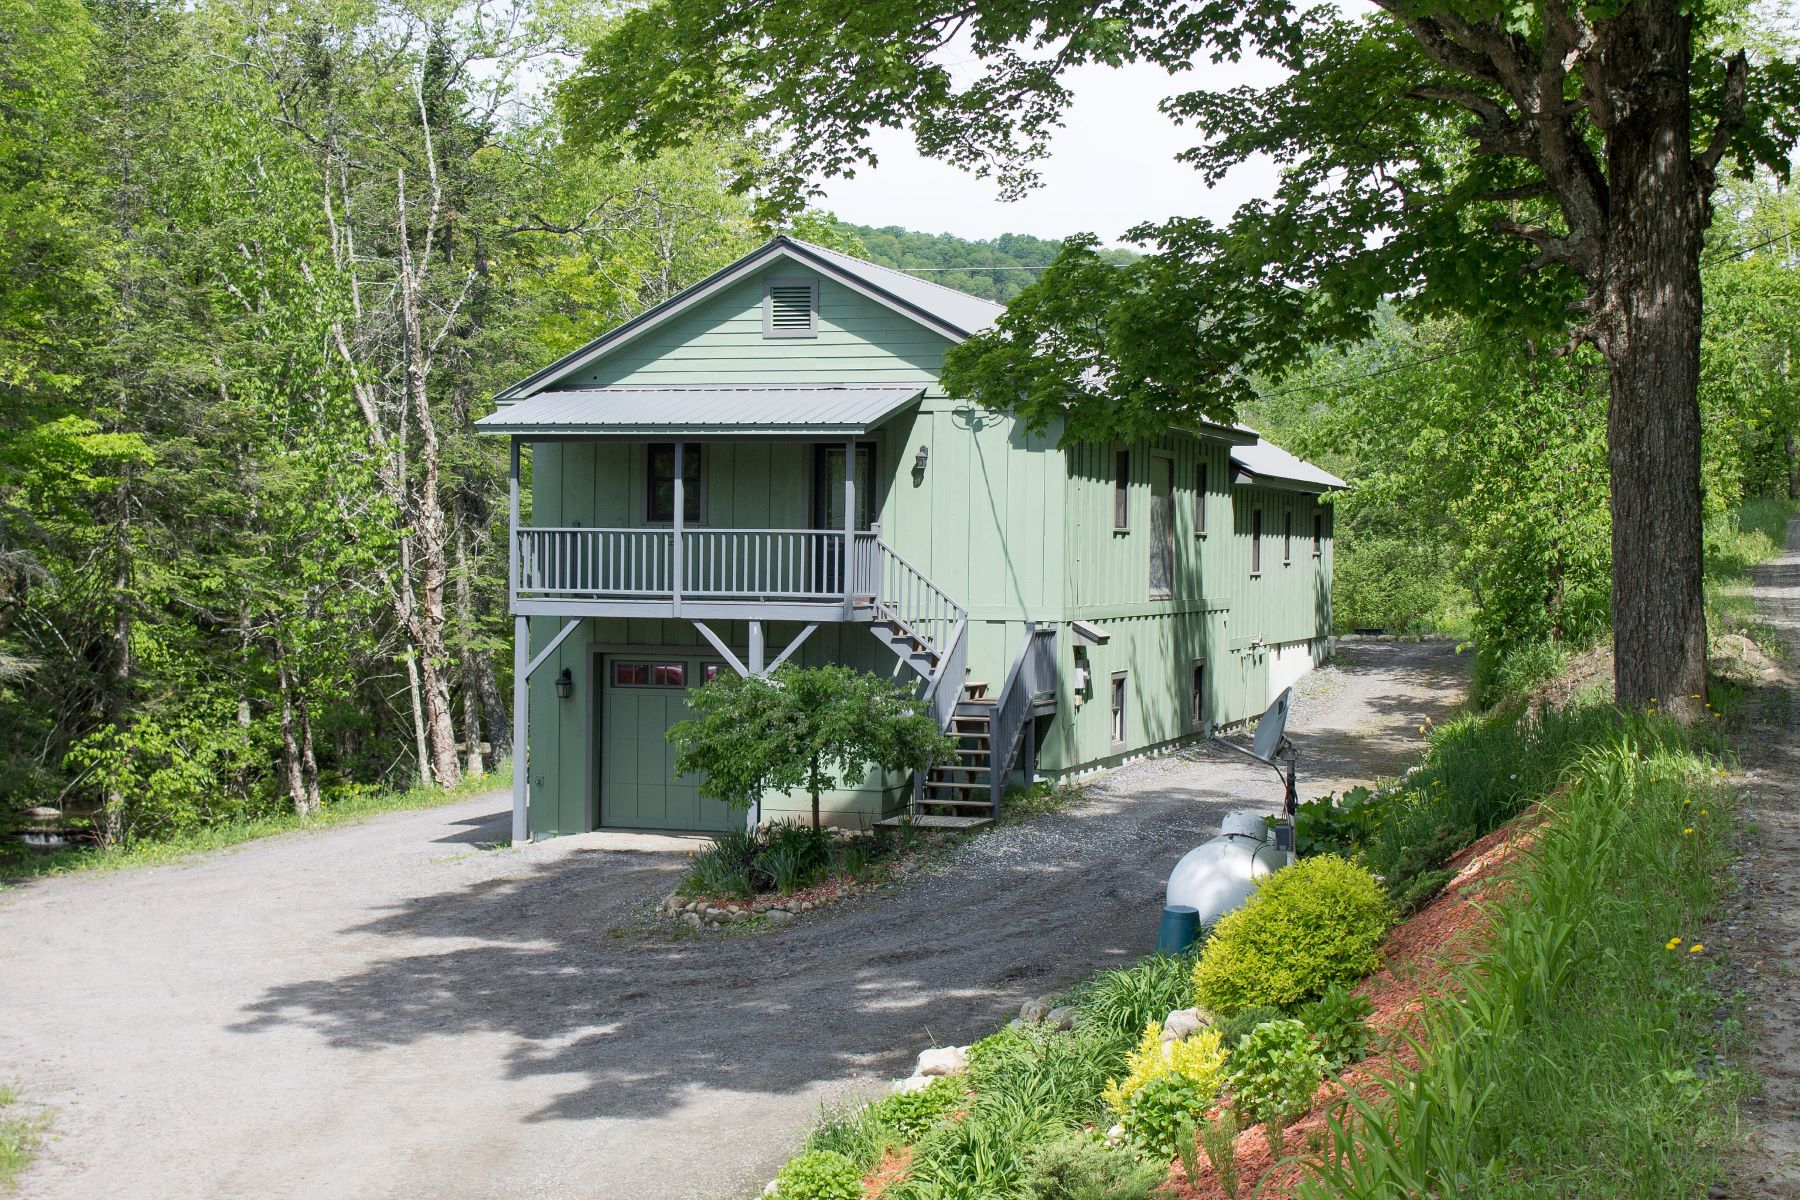 Single Family Homes for Sale at Three Bedroom Contemporary in Chelsea 117 Washington Tpke Chelsea, Vermont 05038 United States